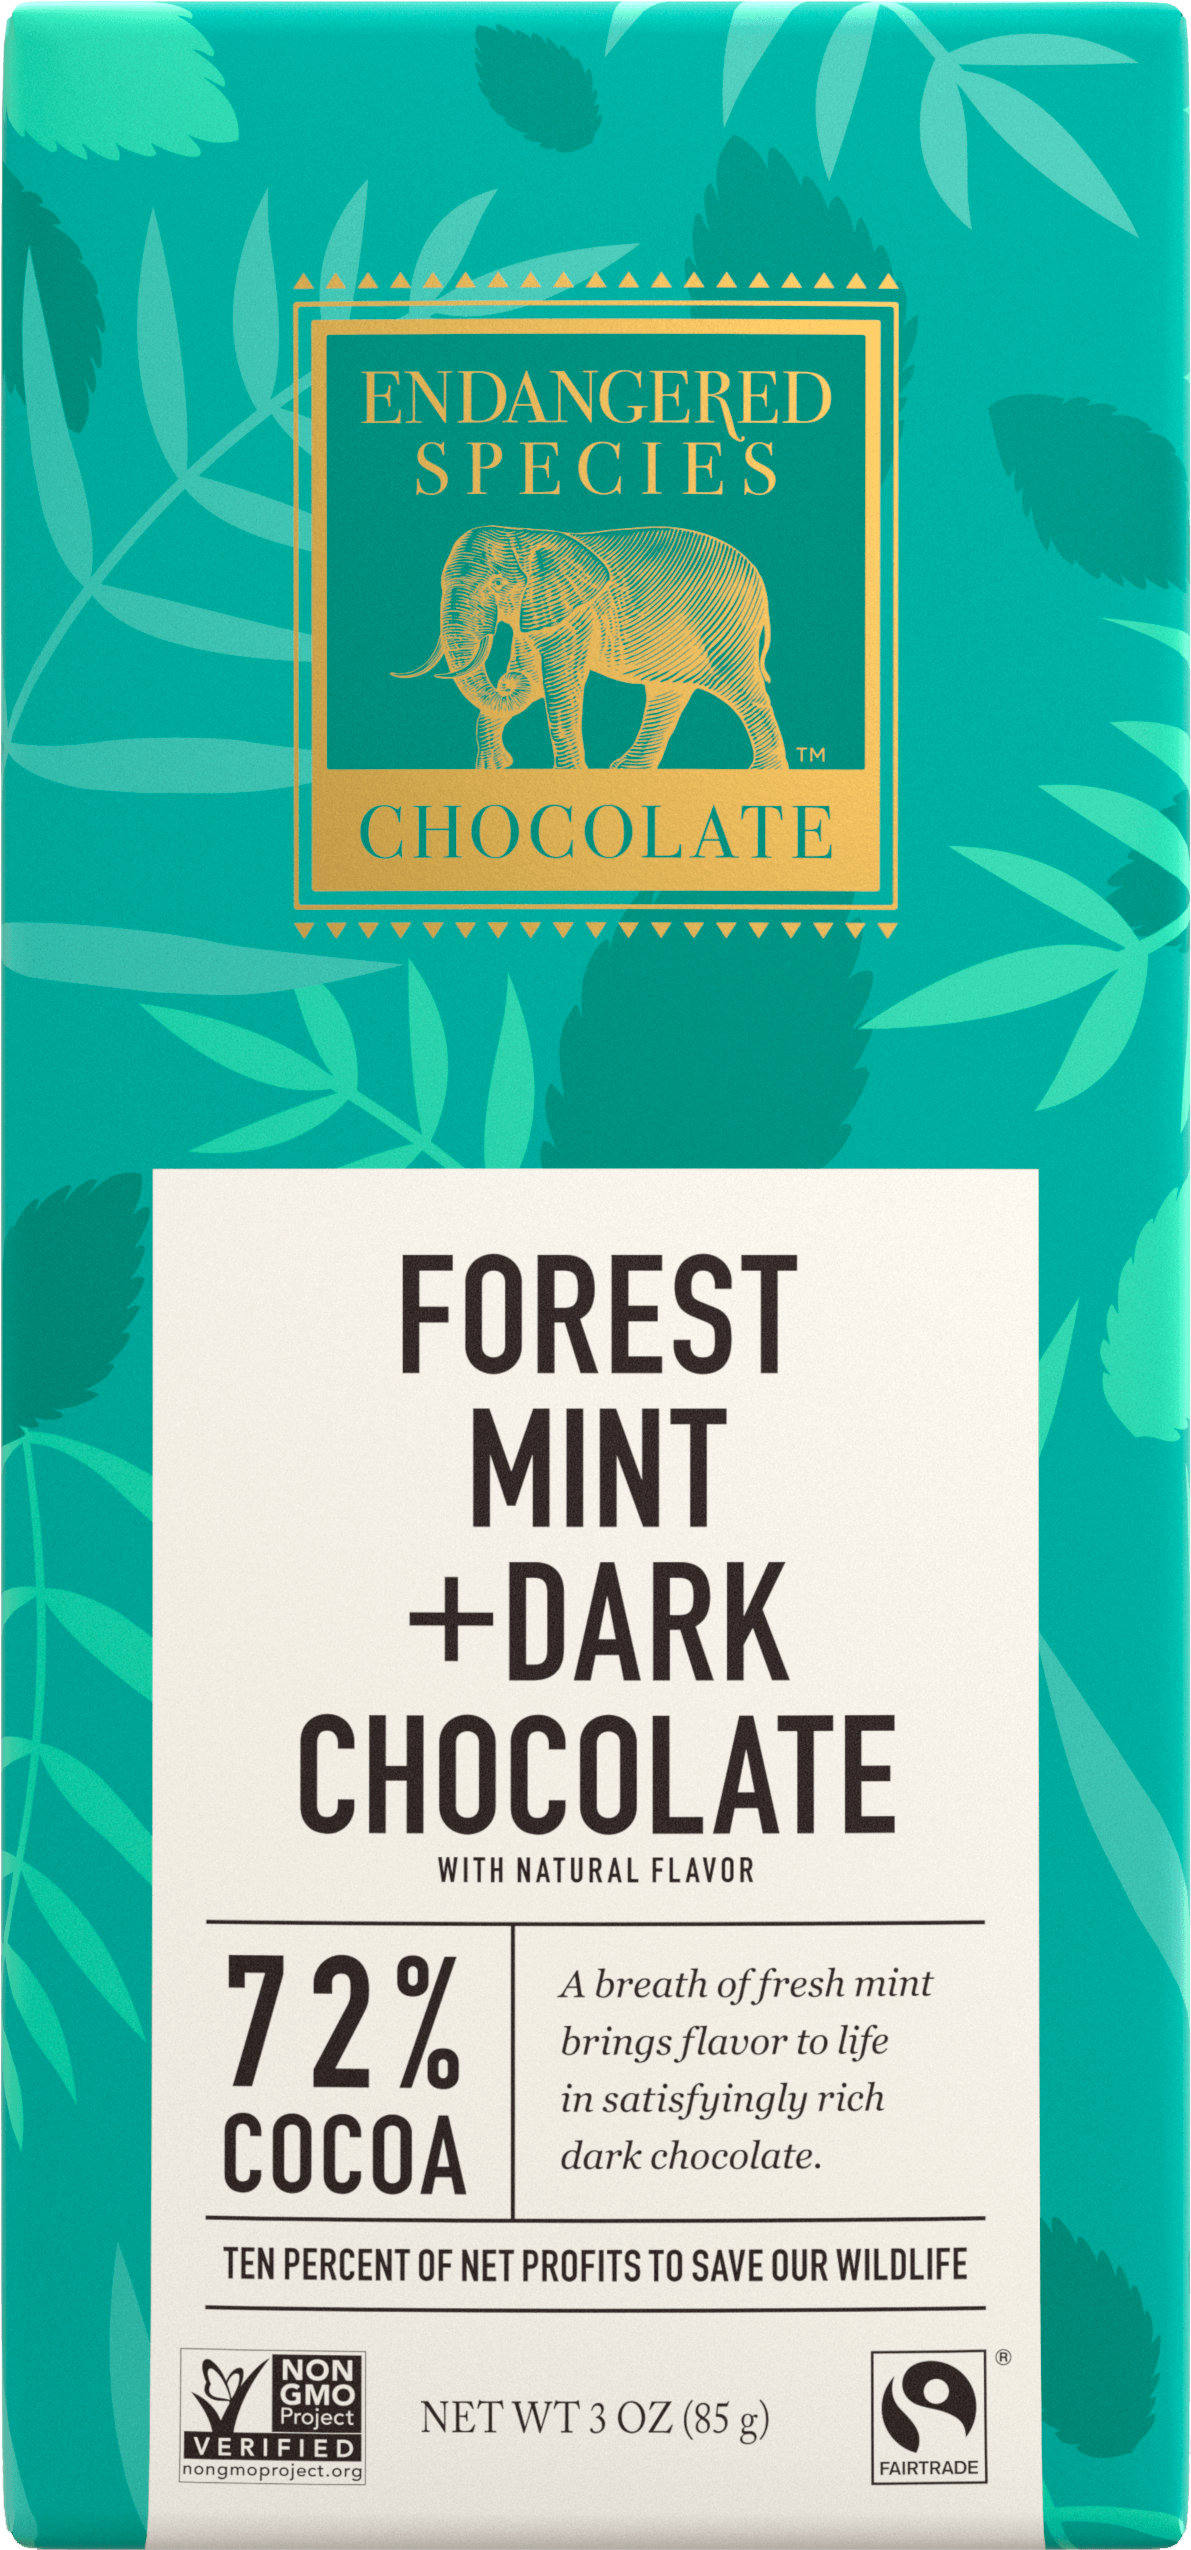 Home Endangered Species Chocolate